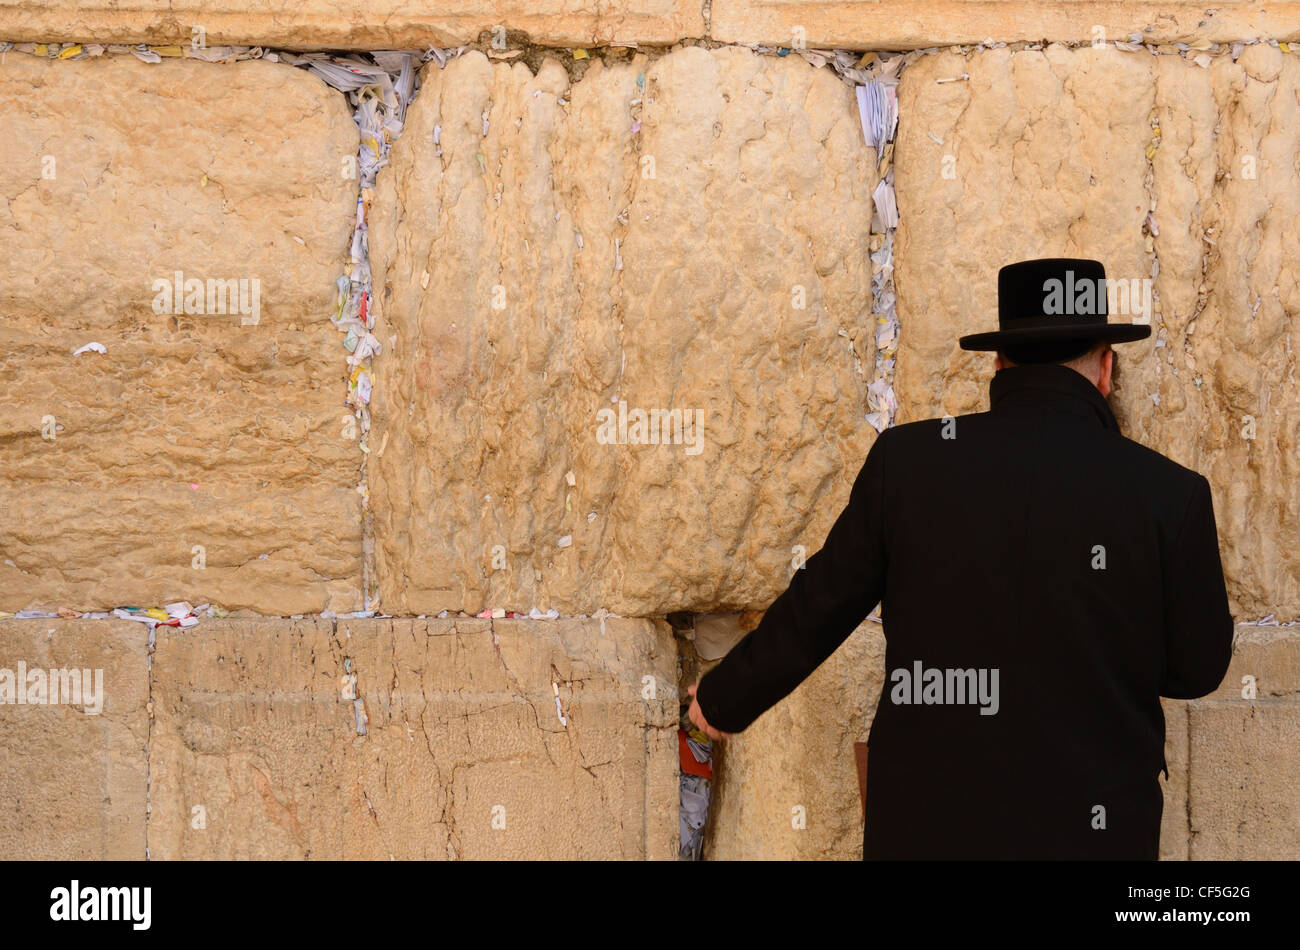 A Hasidic Jew prays at the wailing wall in the Old City of Jerusalem, Israel. - Stock Image